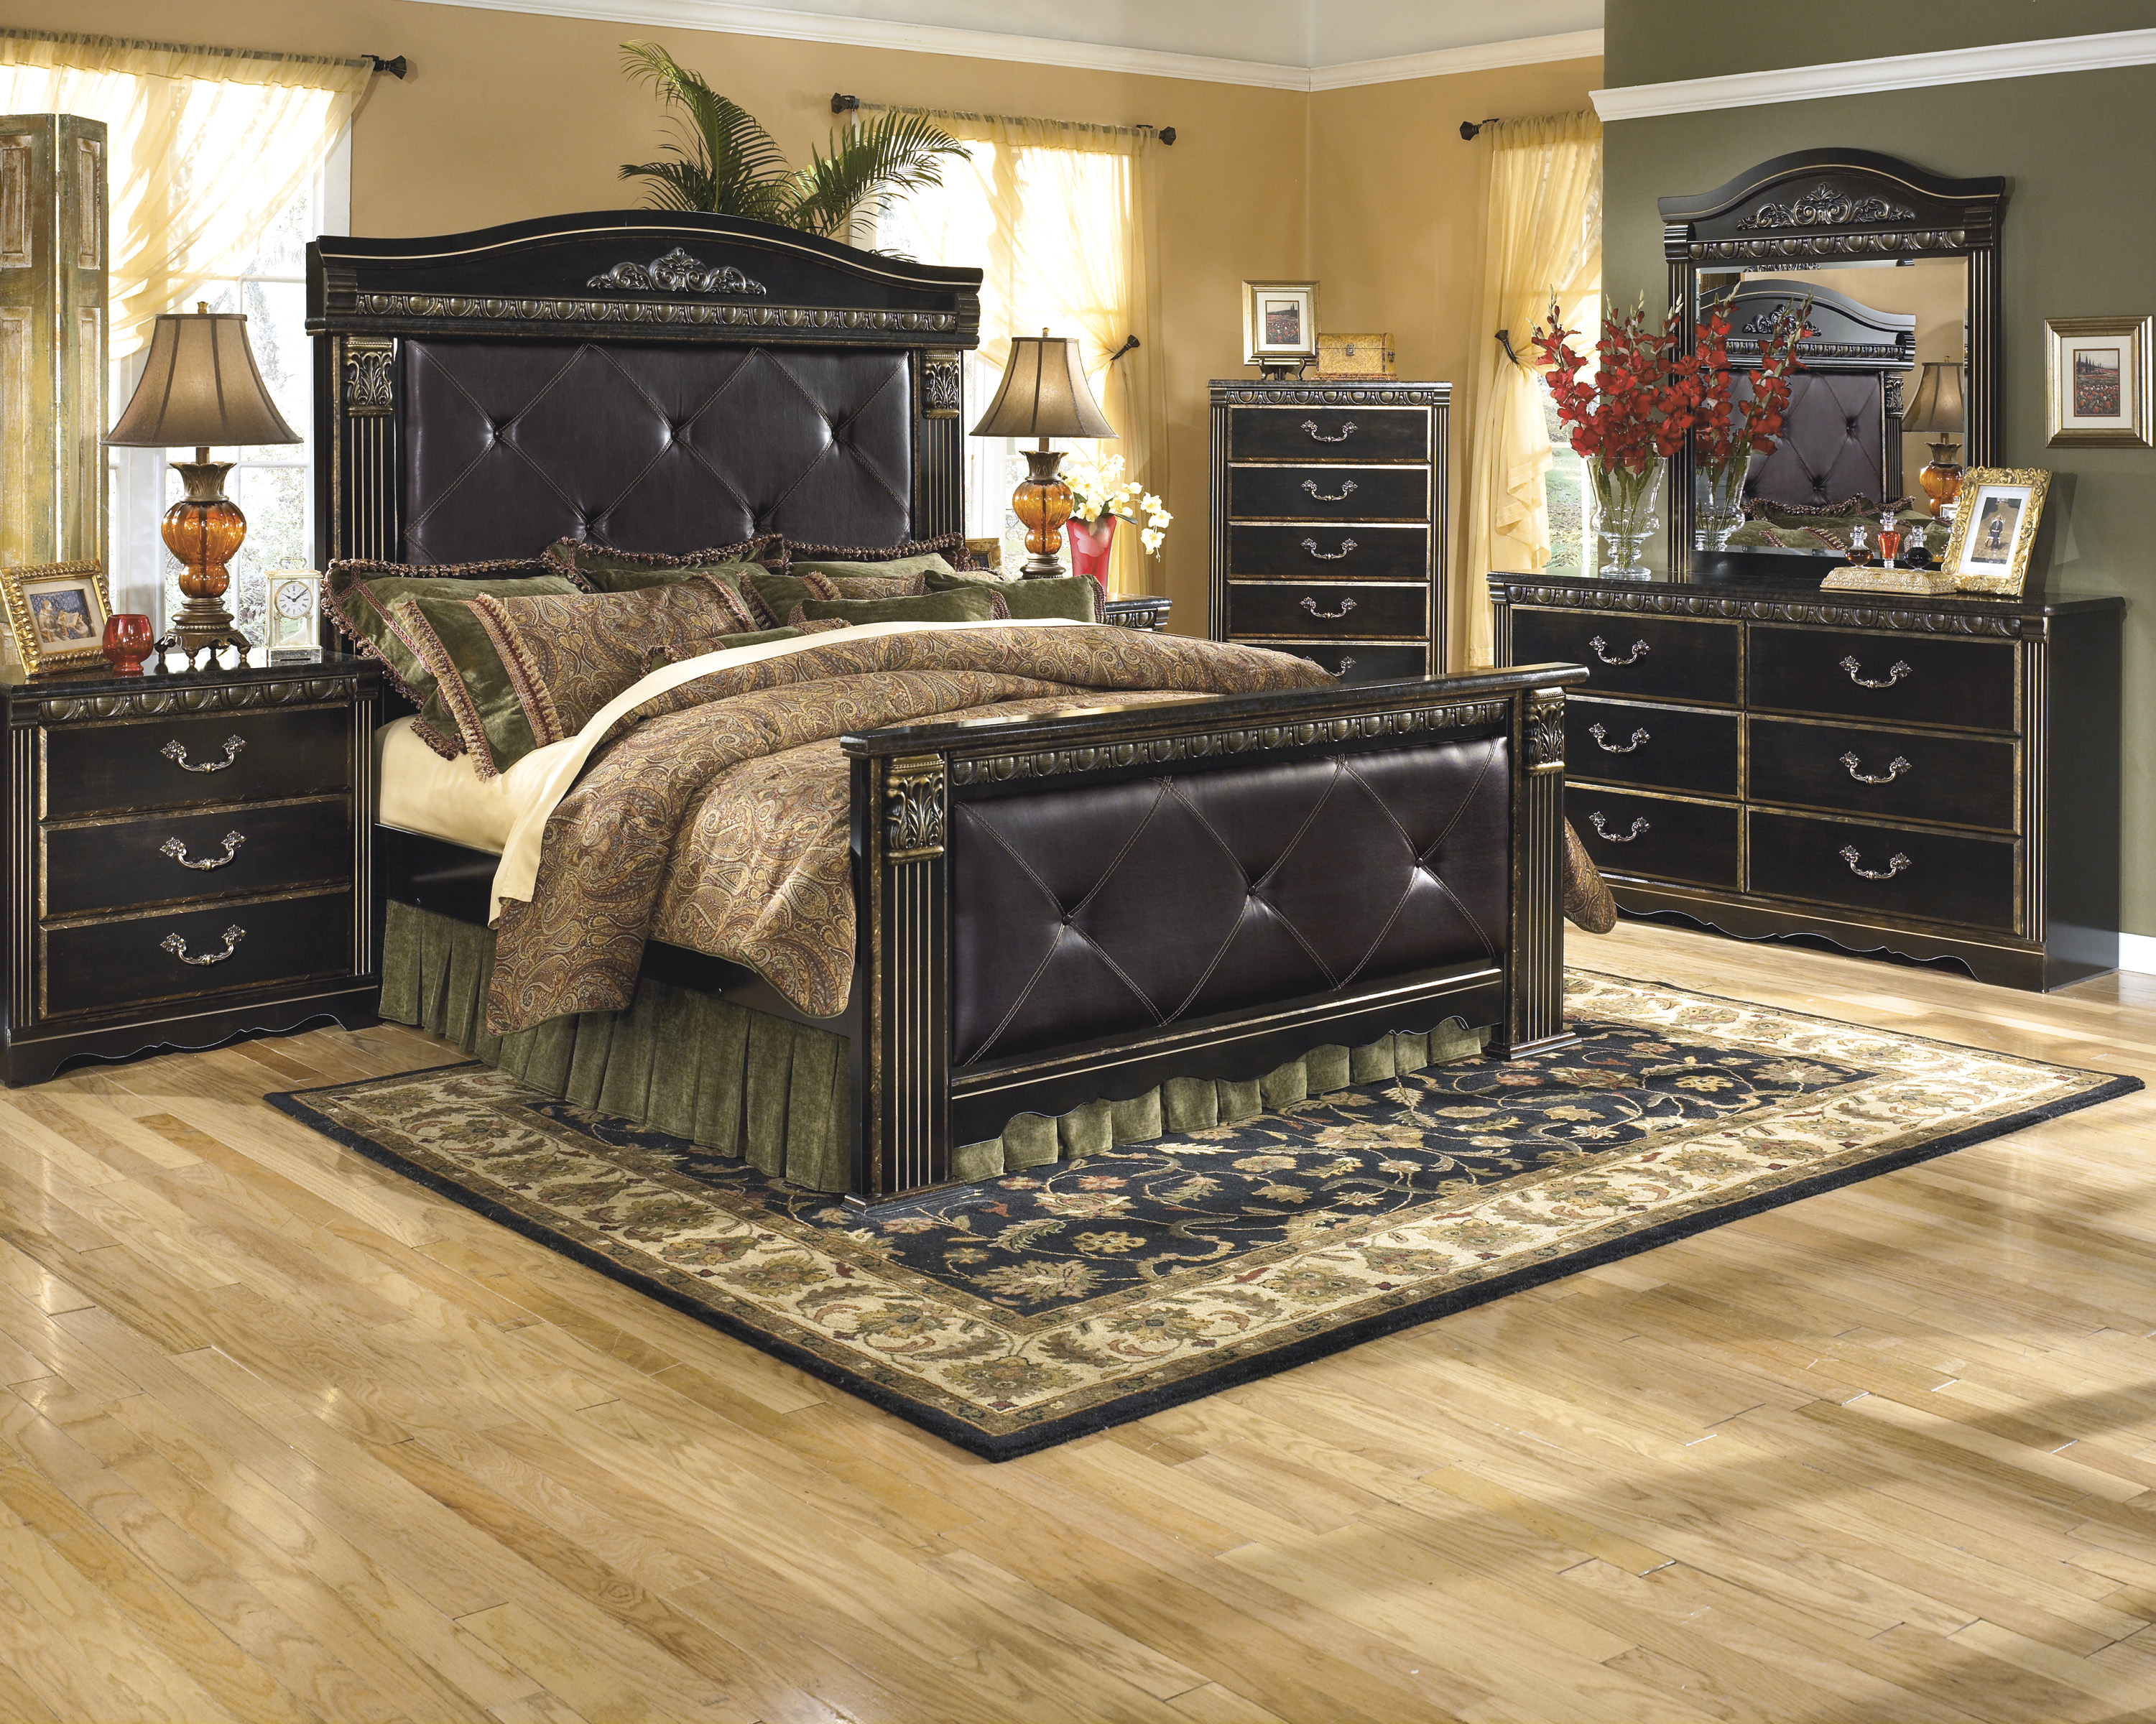 sets size walmart ashley discount bedrooms sale bed suite california uk furniture brisbane bedroom of full king